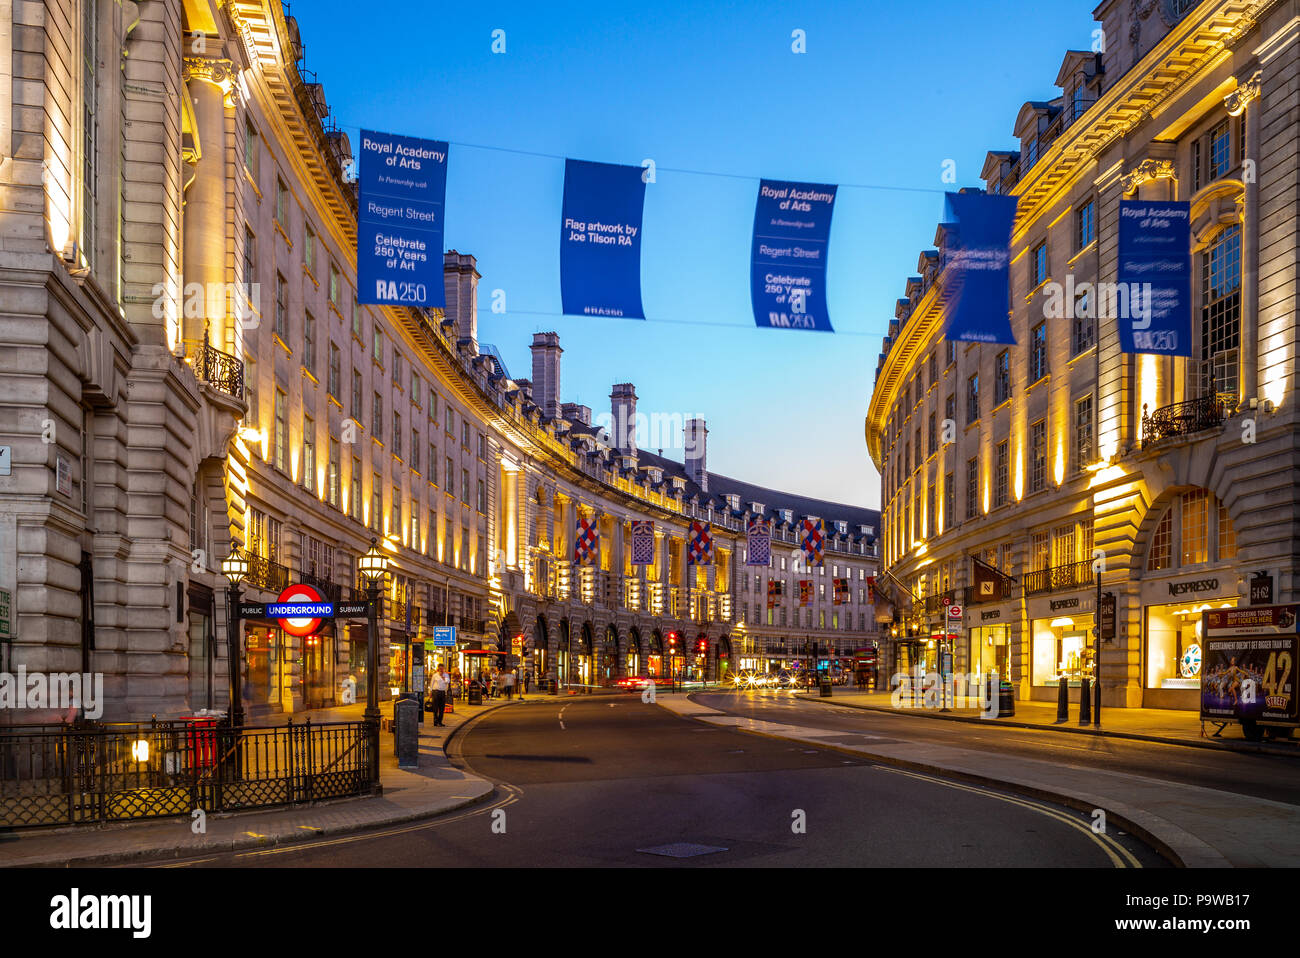 night view of piccadilly circus, a road junction and public space of London's West End in the City of Westminster - Stock Image